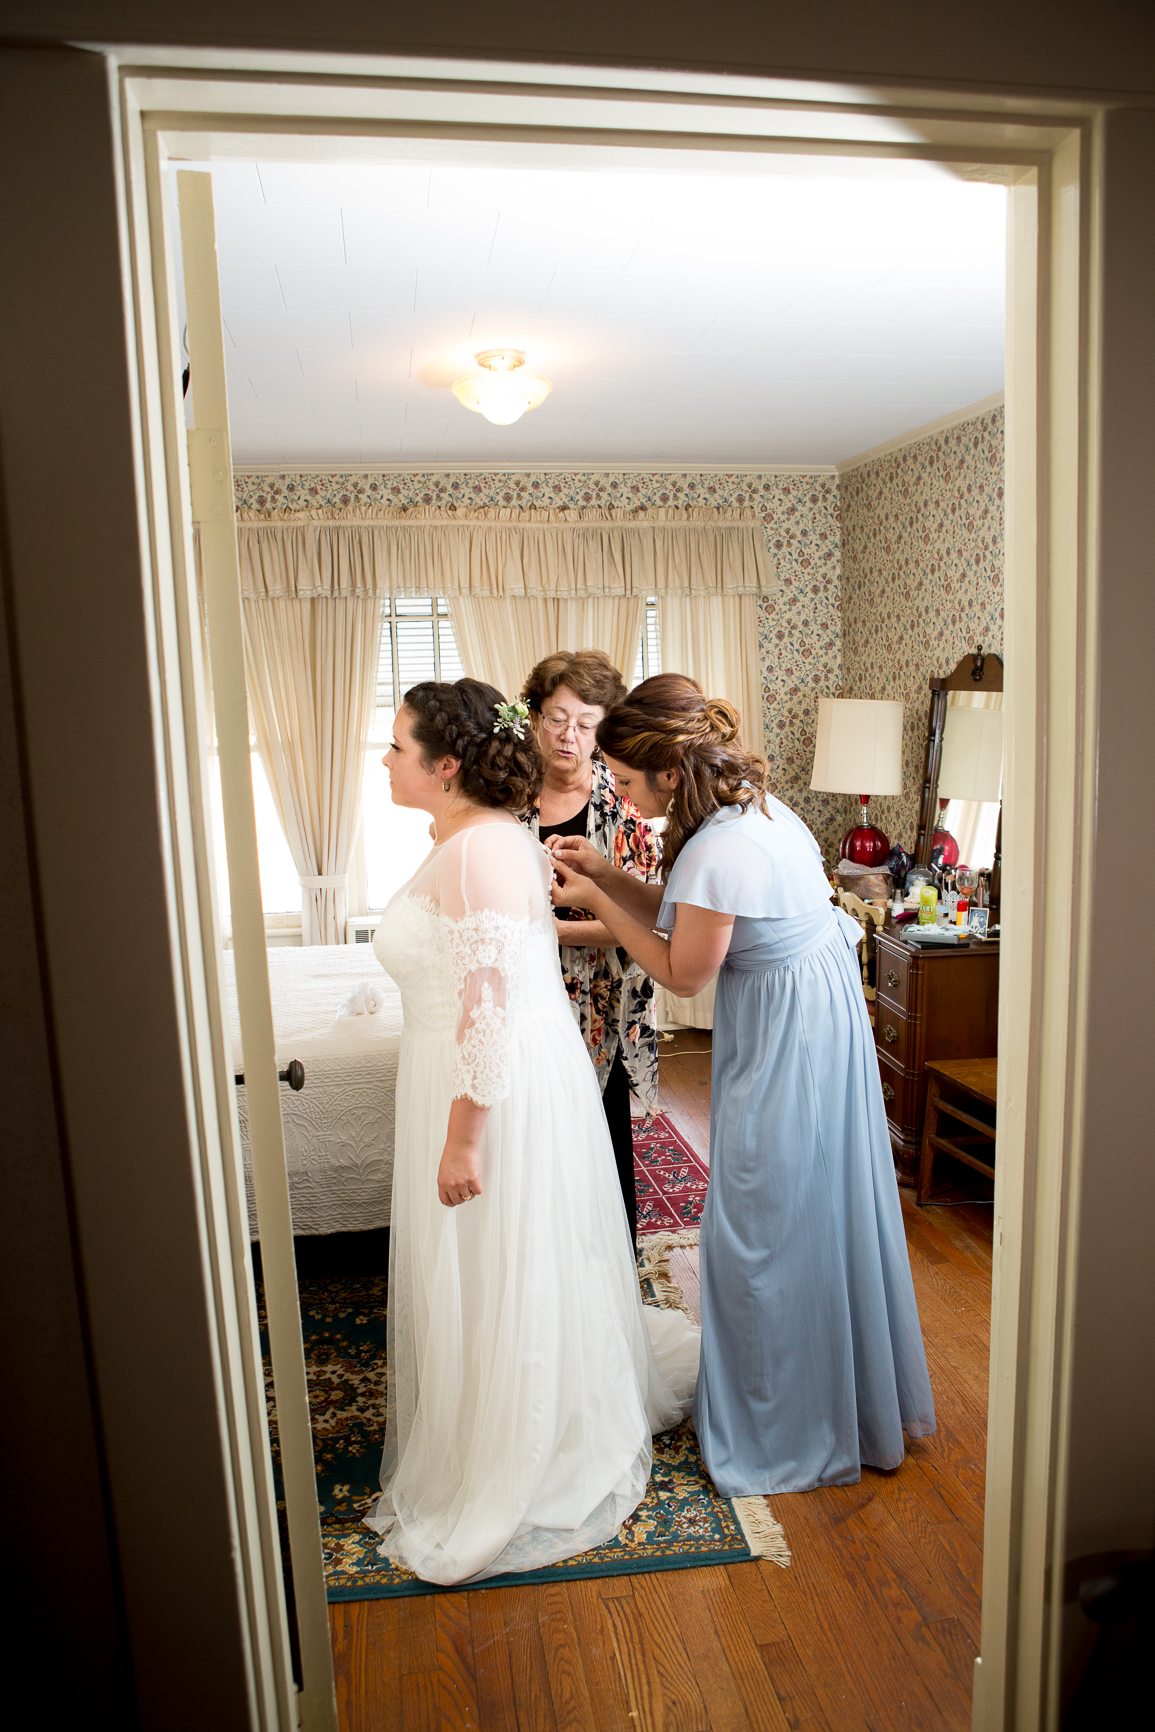 101 studio llc -Bride getting ready 3.jpg